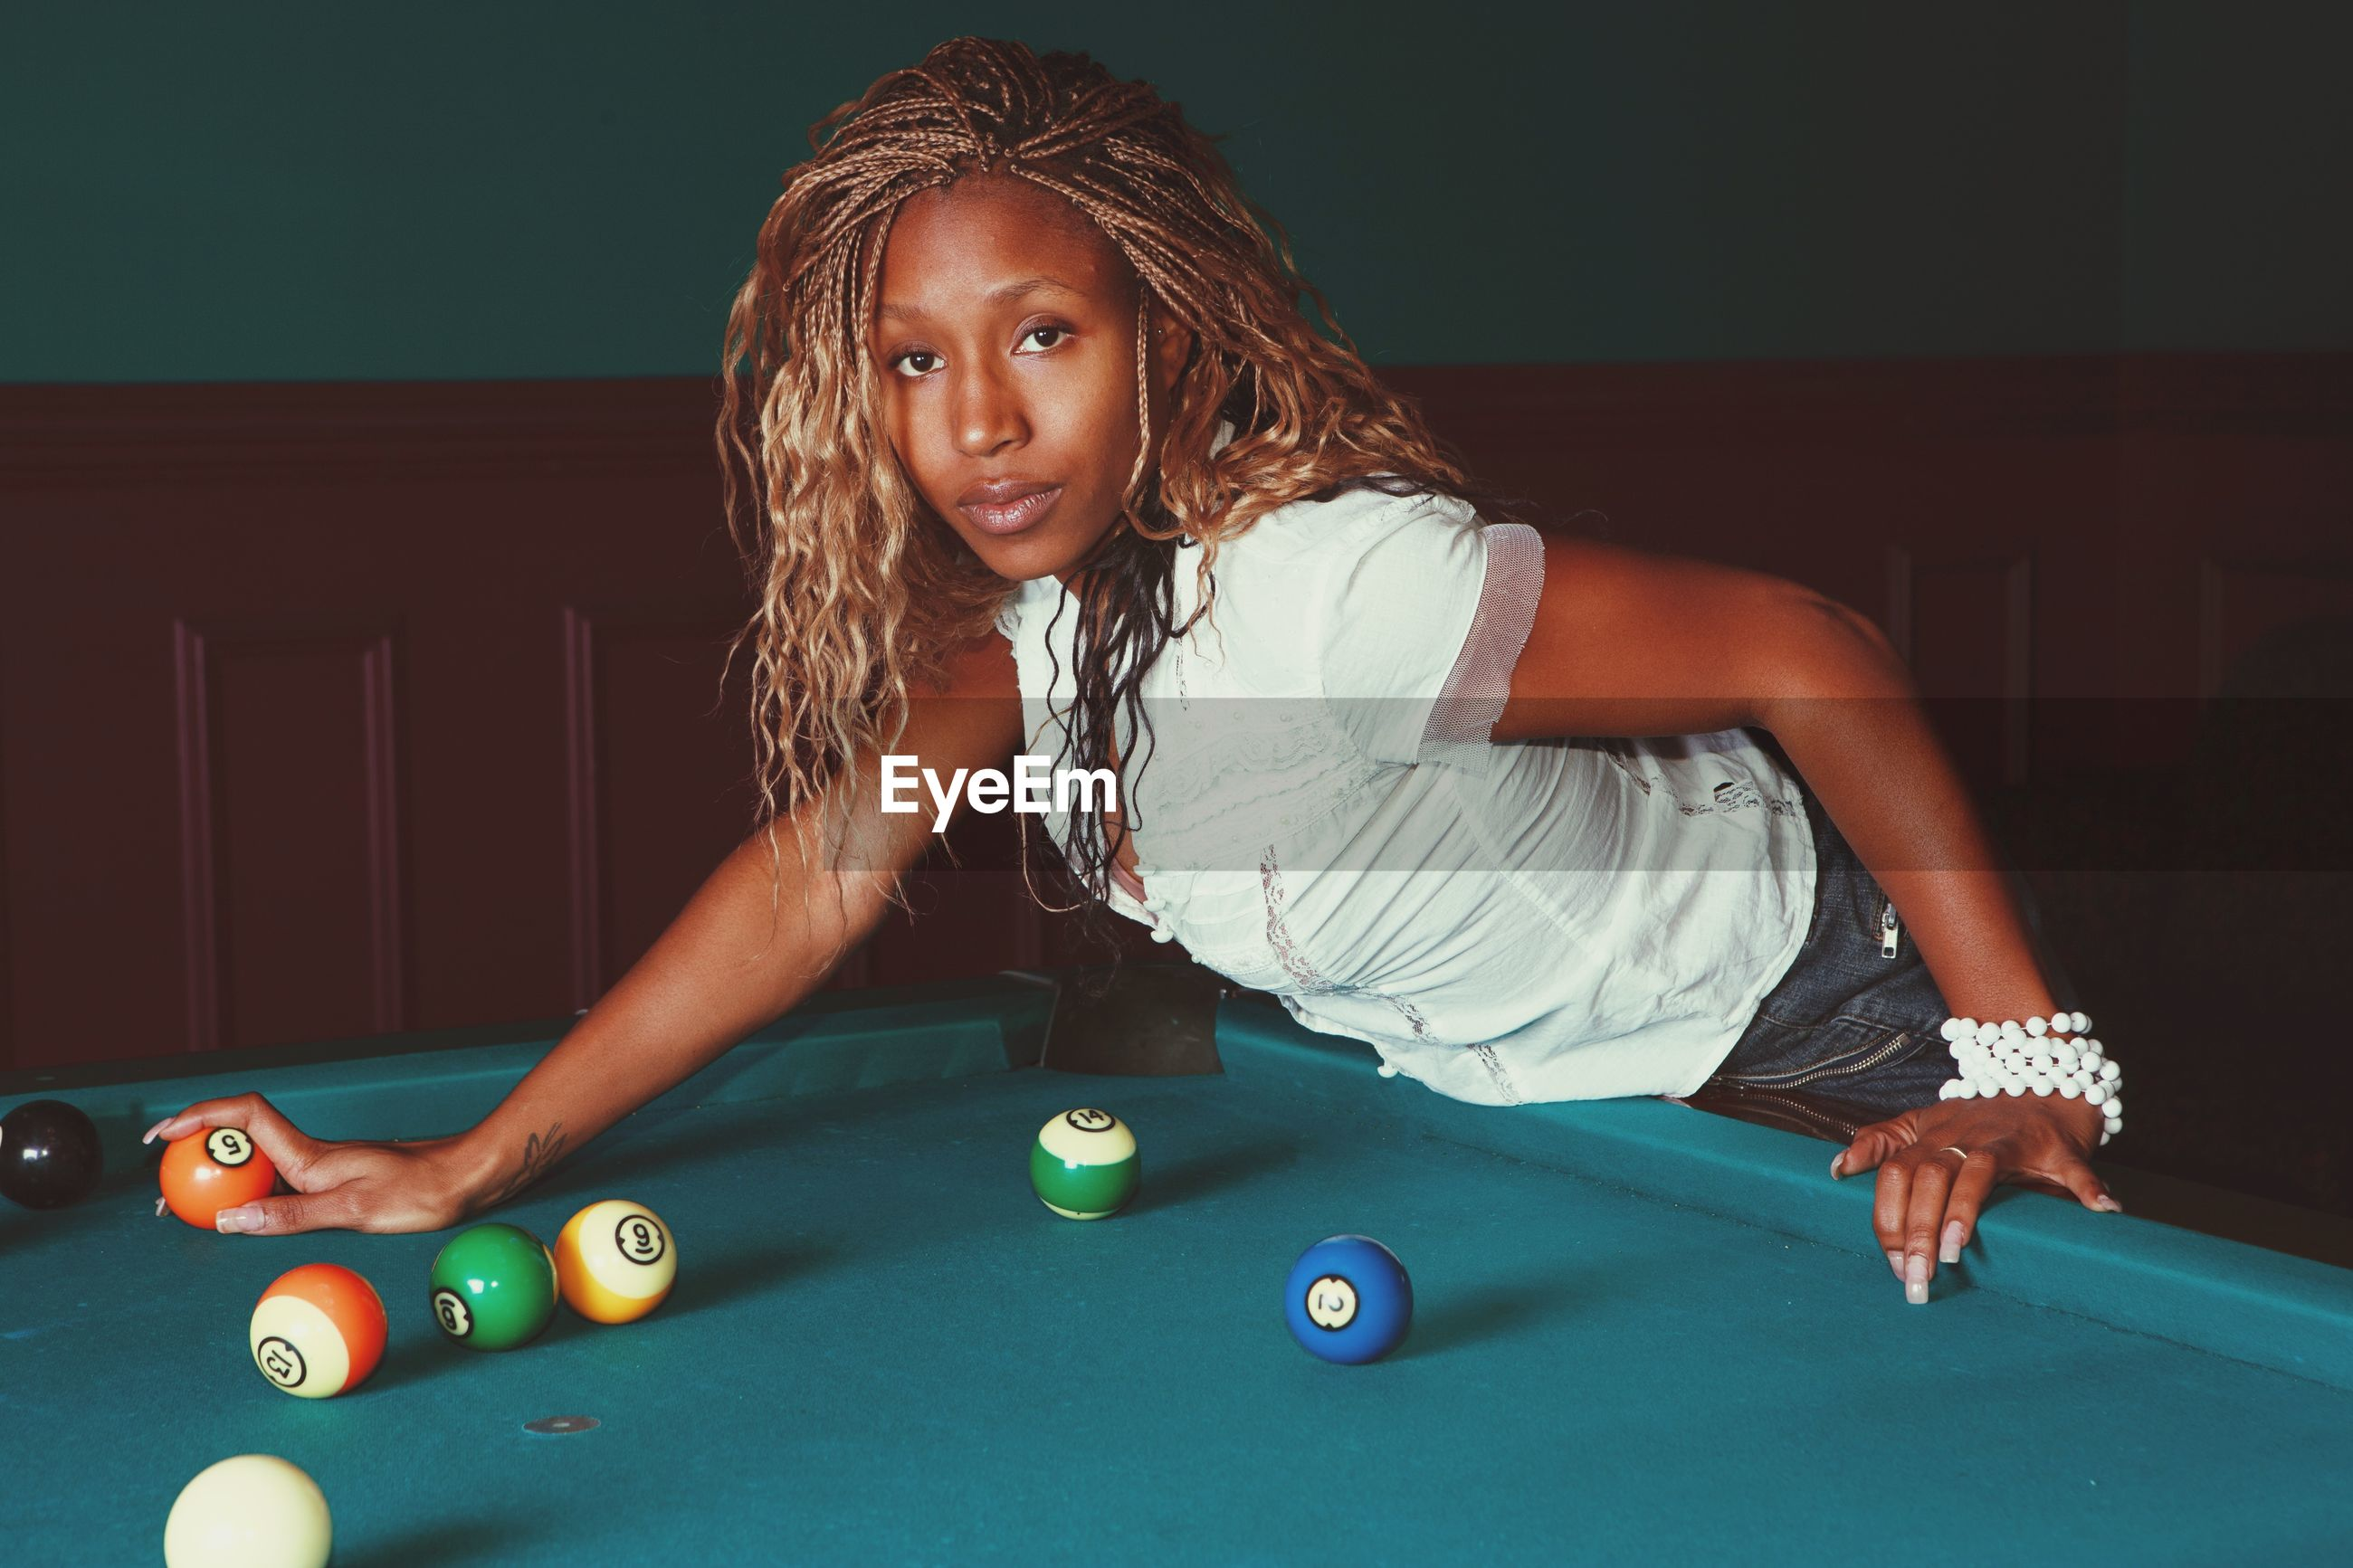 Portrait of woman standing by pool table